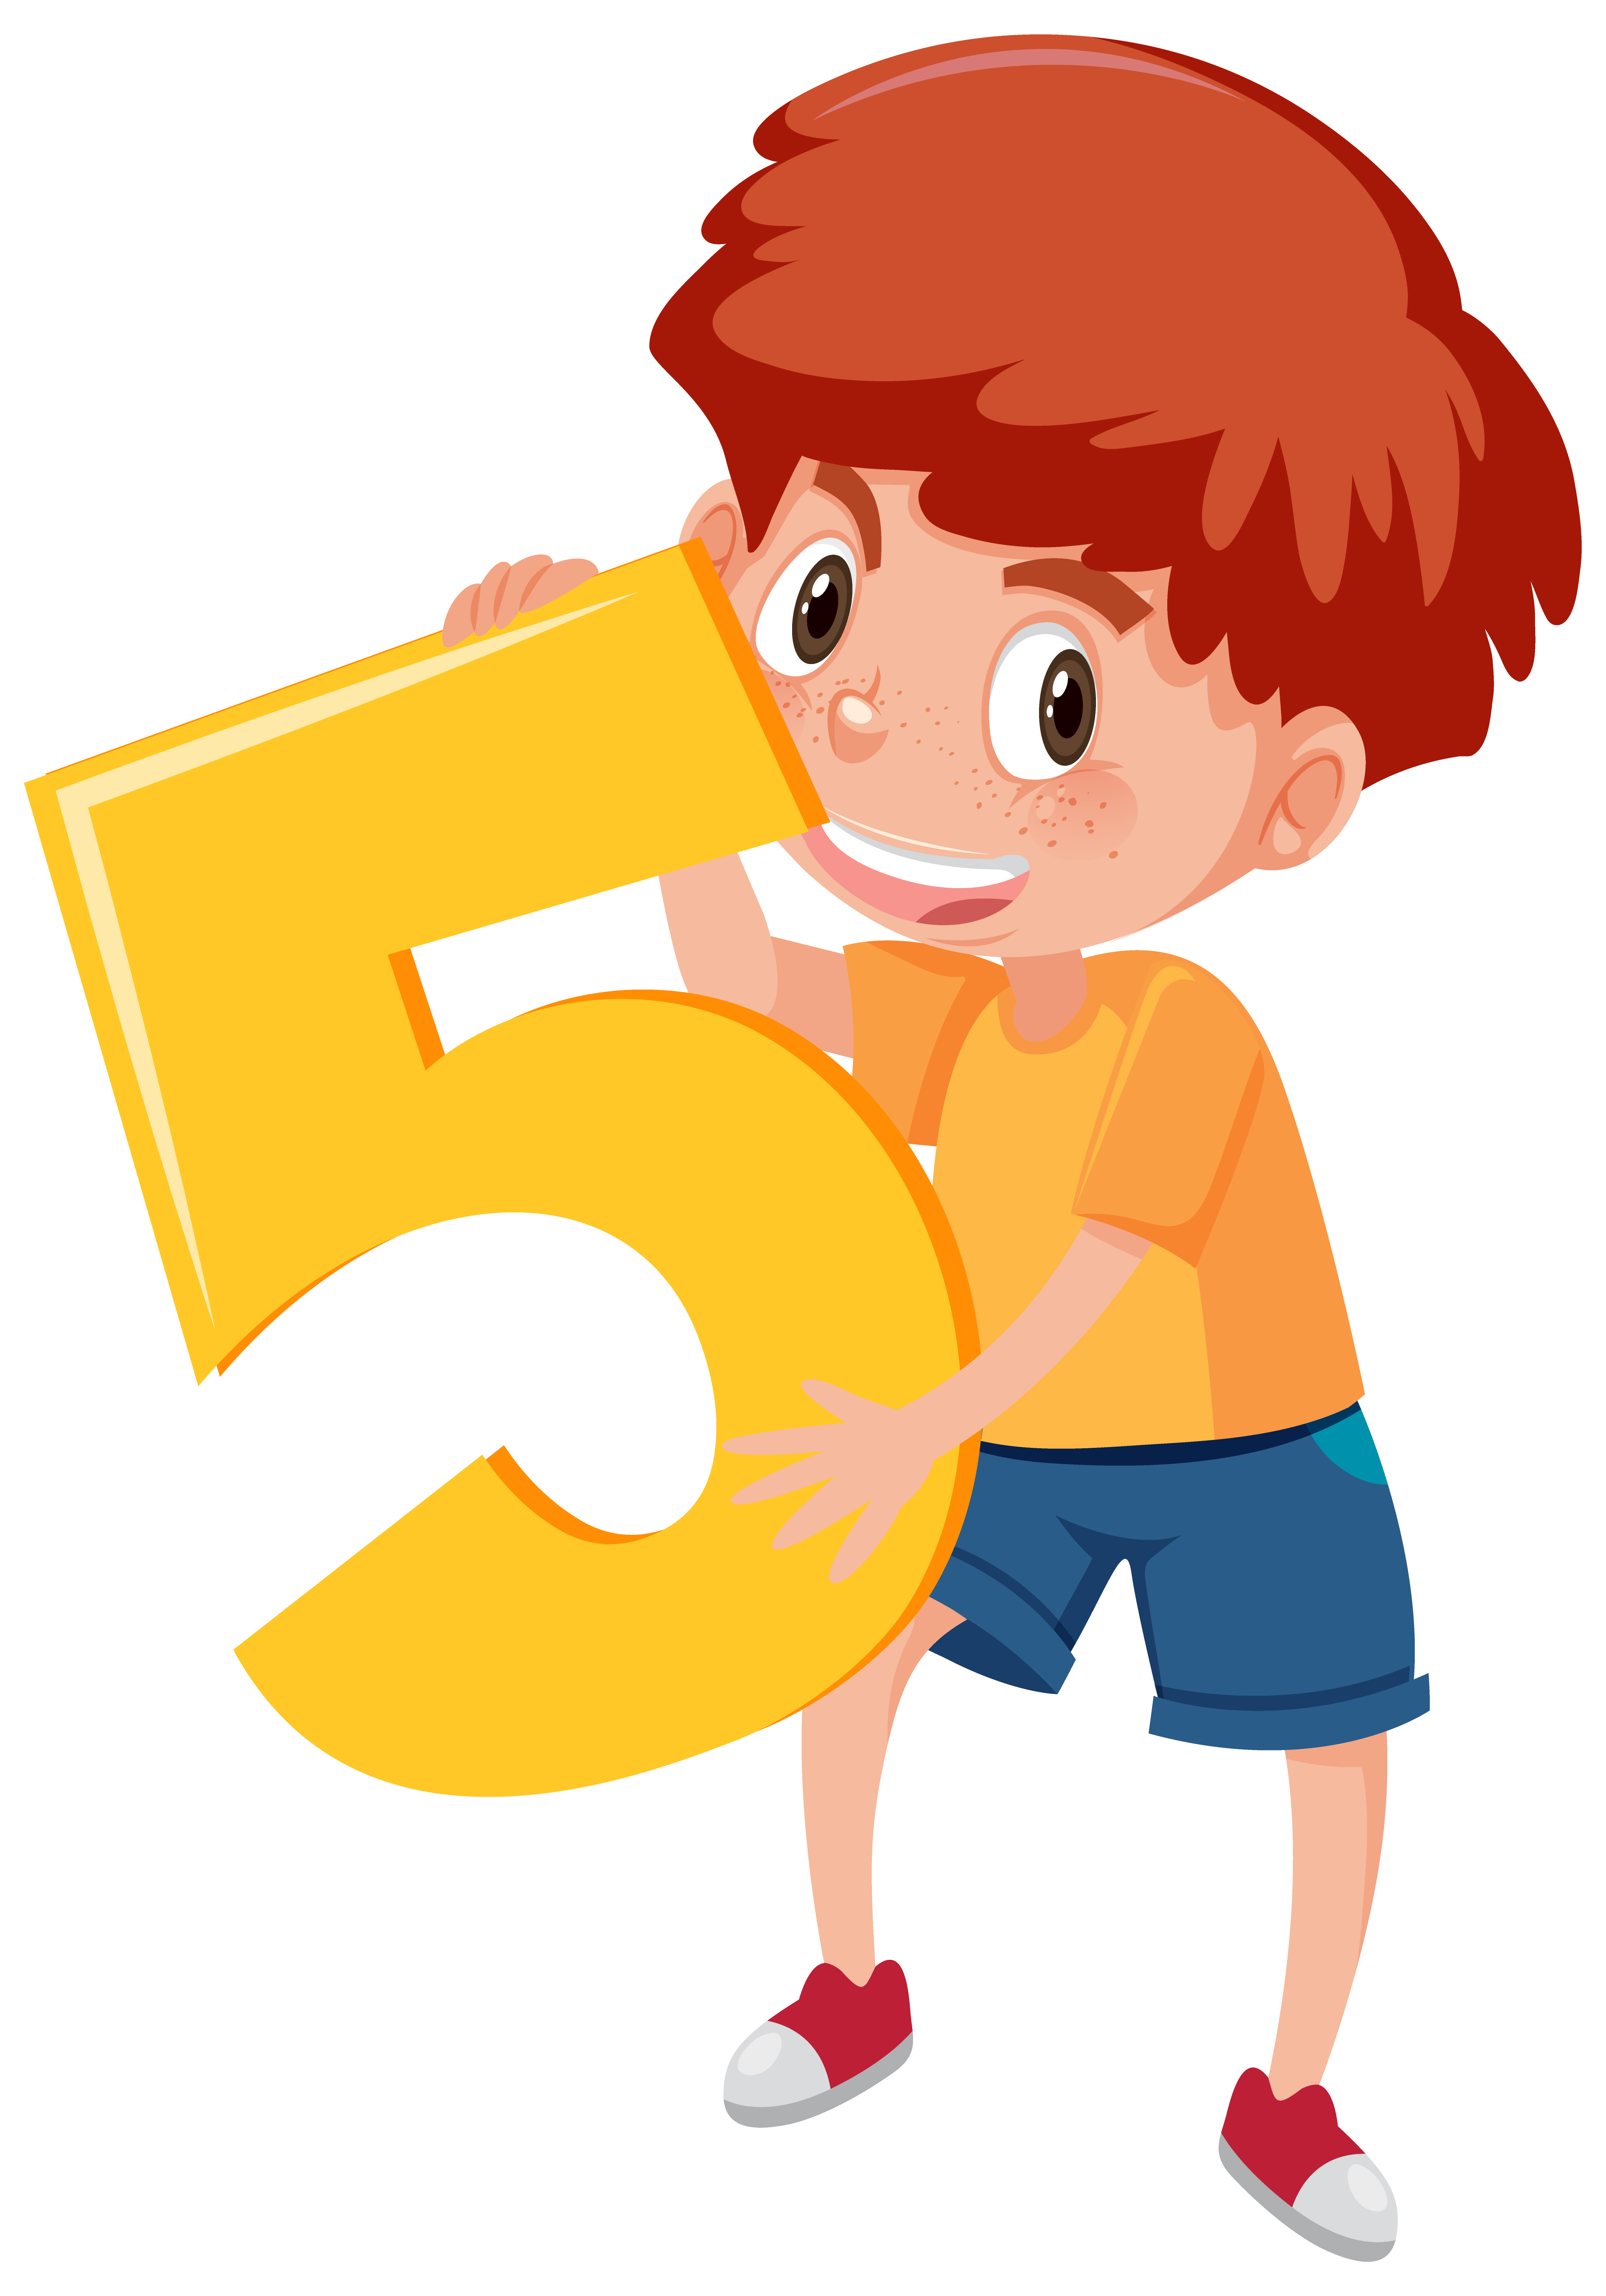 Boy Holding The Number 5 Download Free Vectors Clipart Graphics Vector Art